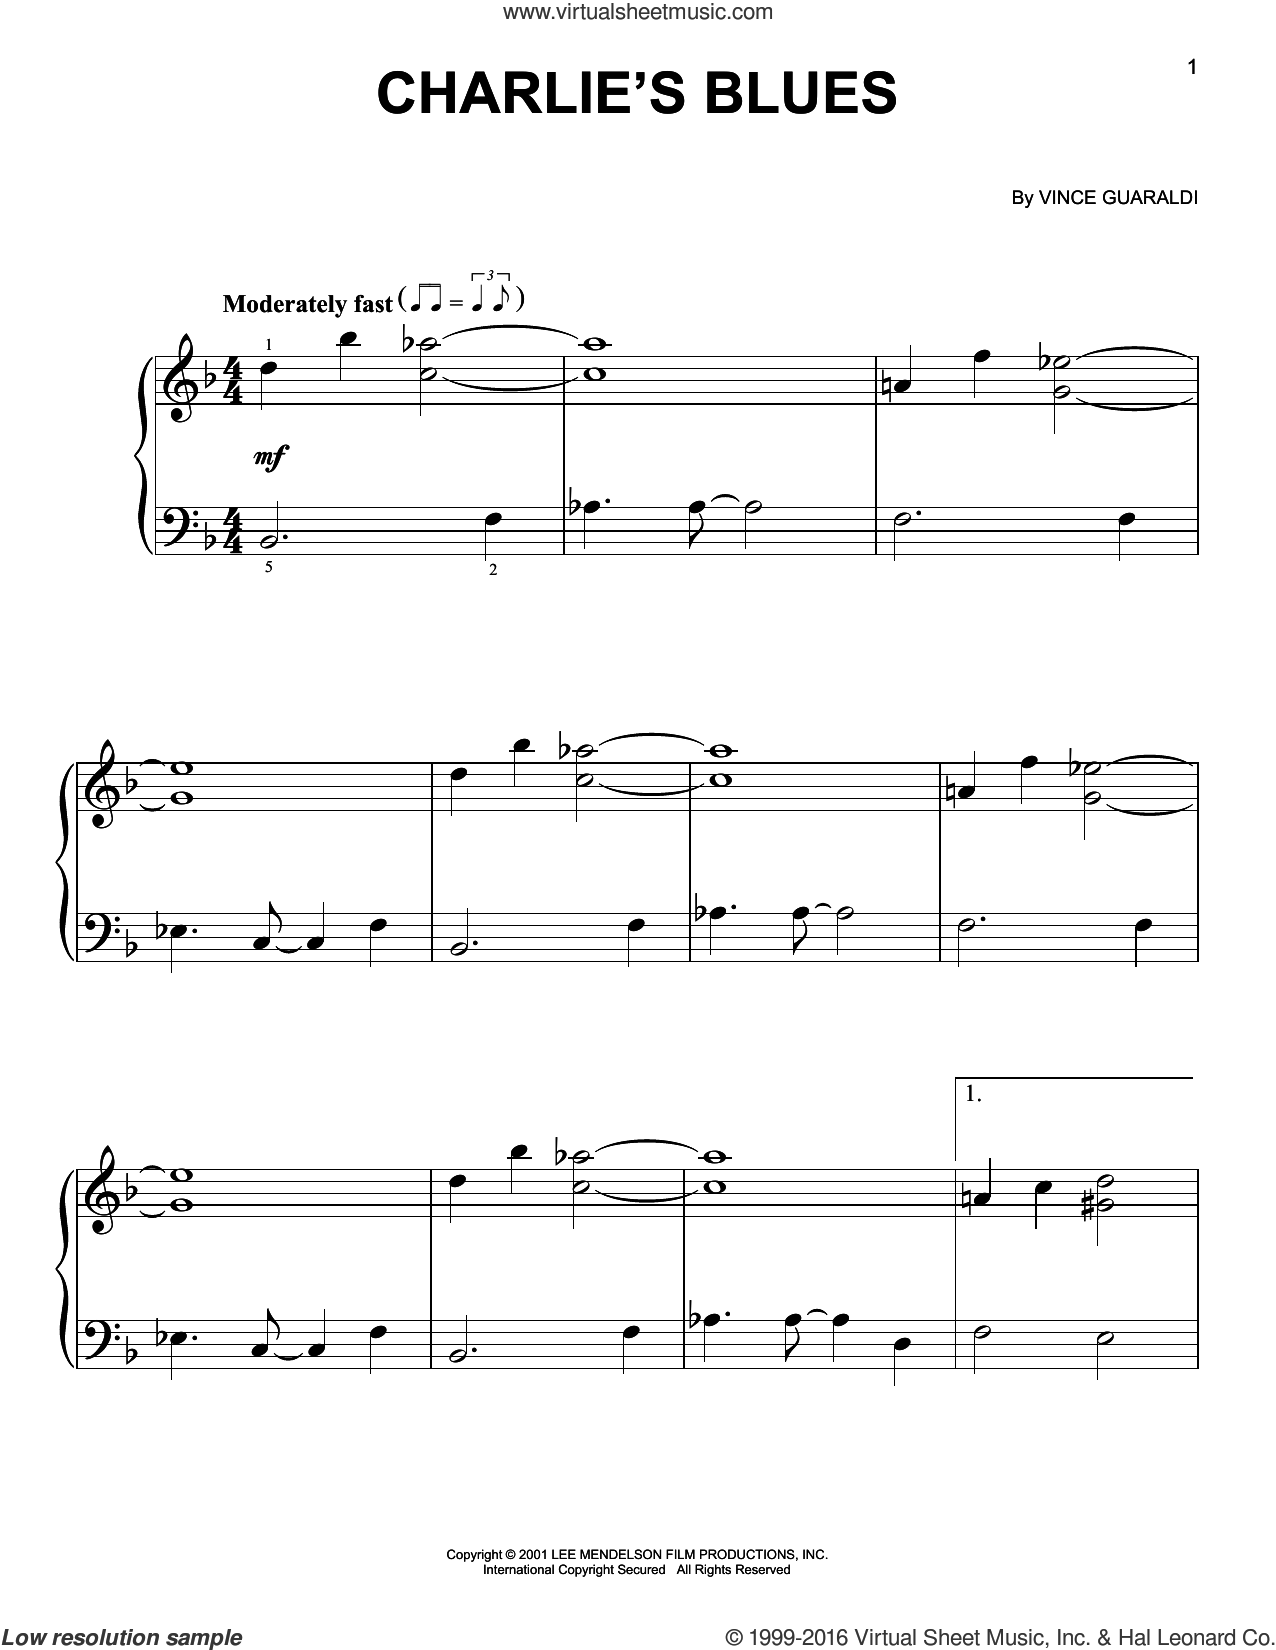 Charlie's Blues sheet music for piano solo by Vince Guaraldi, easy skill level